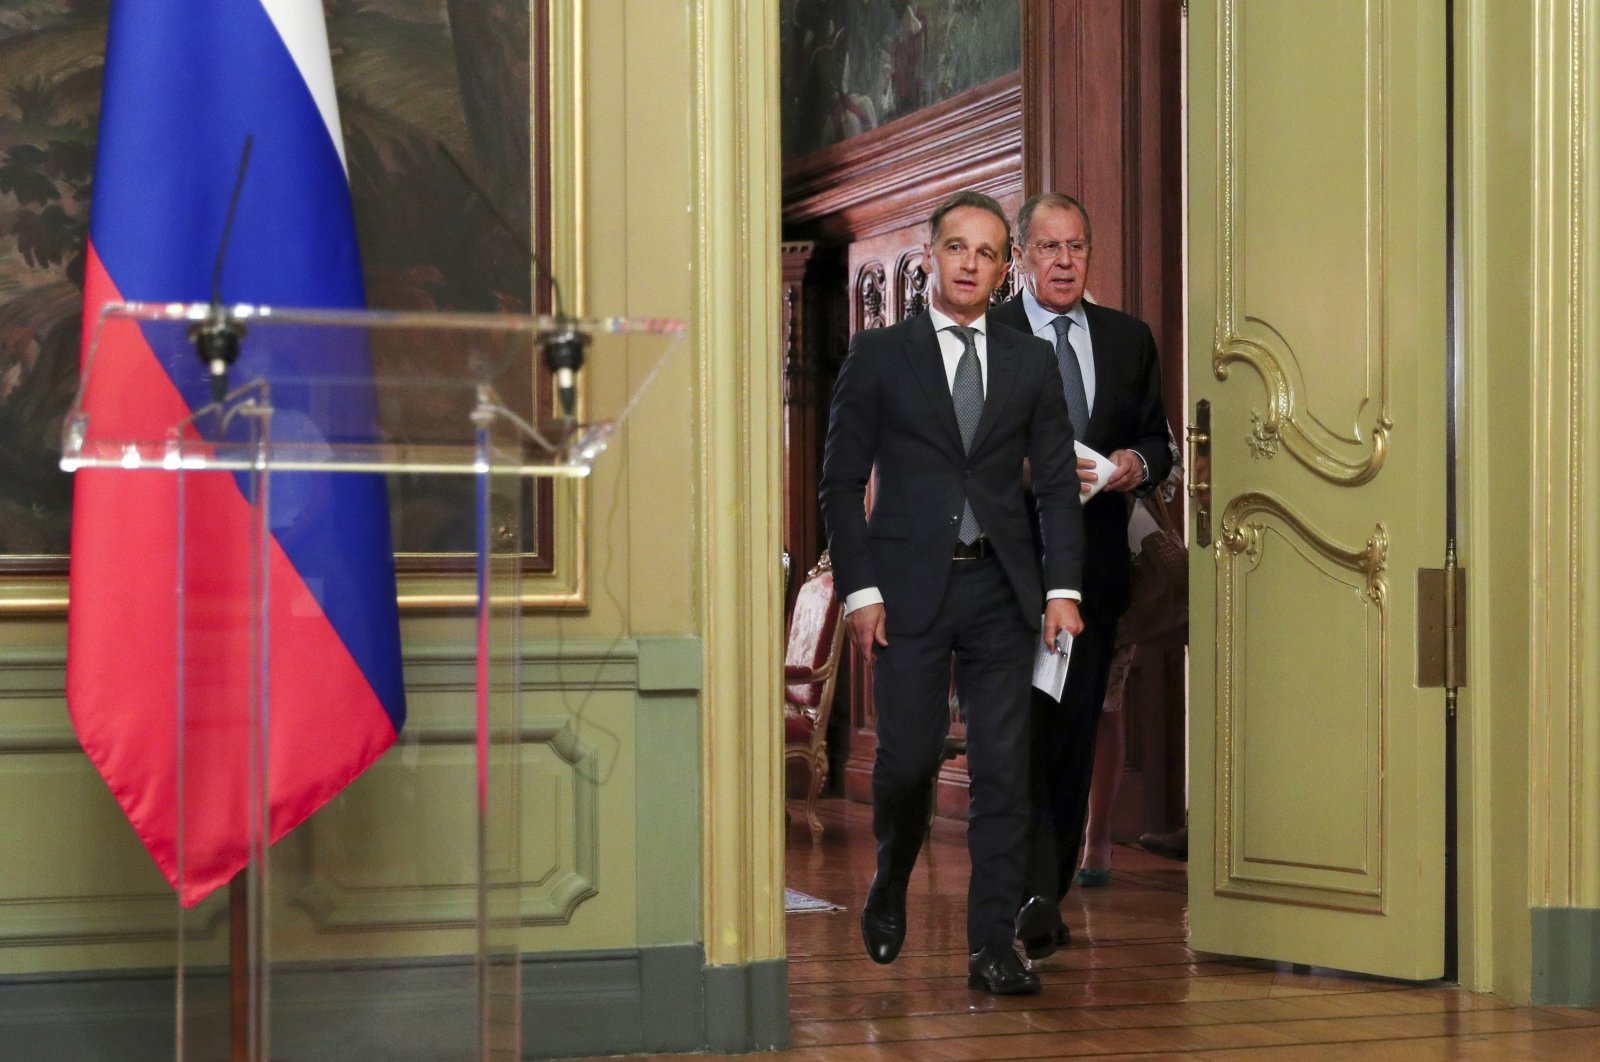 Russian Foreign Minister Sergey Lavrov (R), and German Foreign Minister Heiko Maas, enter a hall to attend their joint news conference following talks in Moscow, Russia, Aug. 11, 2020. (Russian Foreign Ministry Press Service via AP)